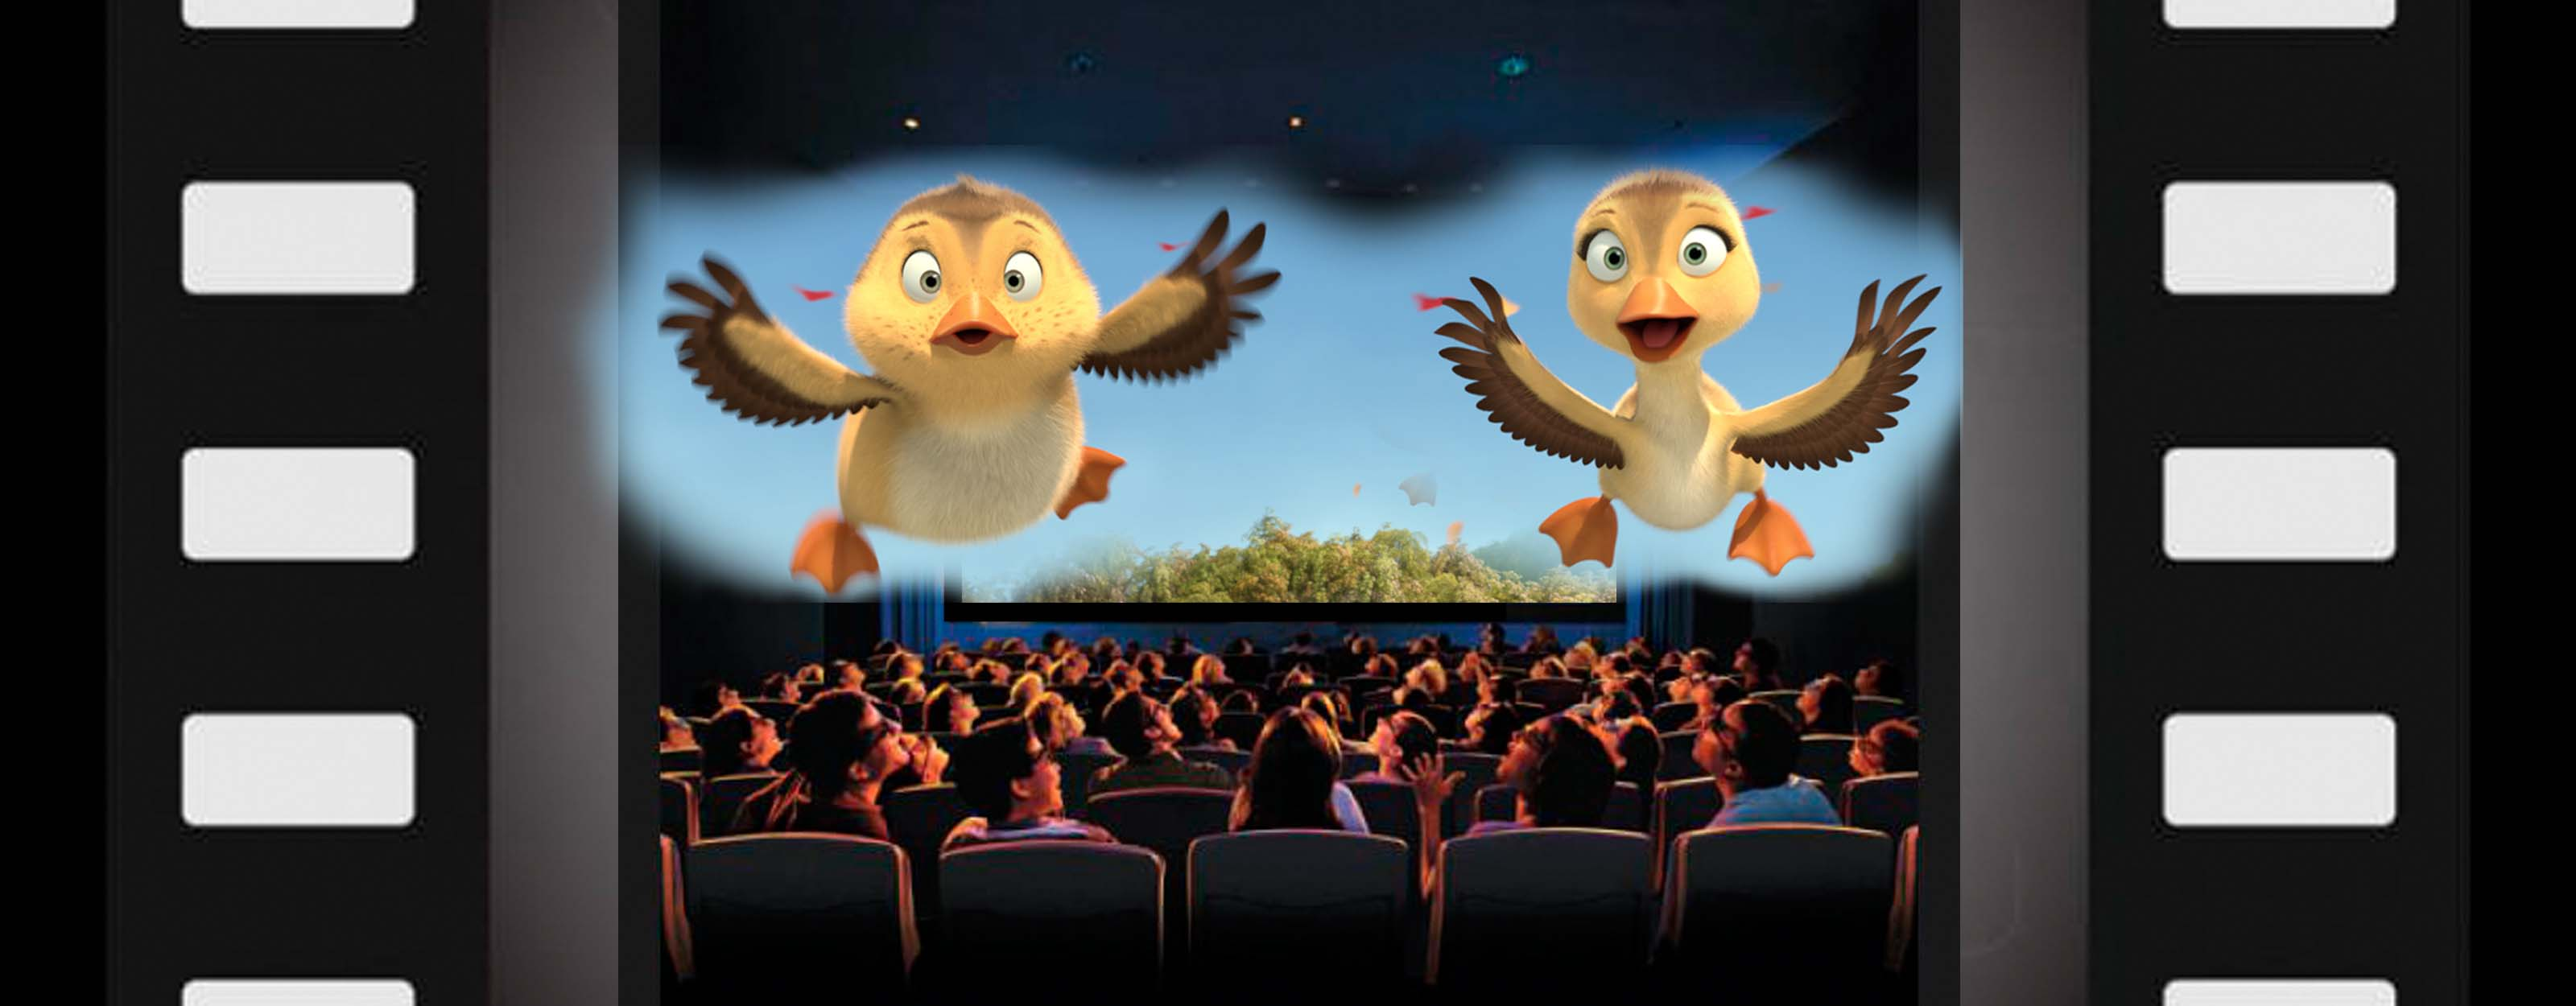 Al aire patos cine familiar gratis